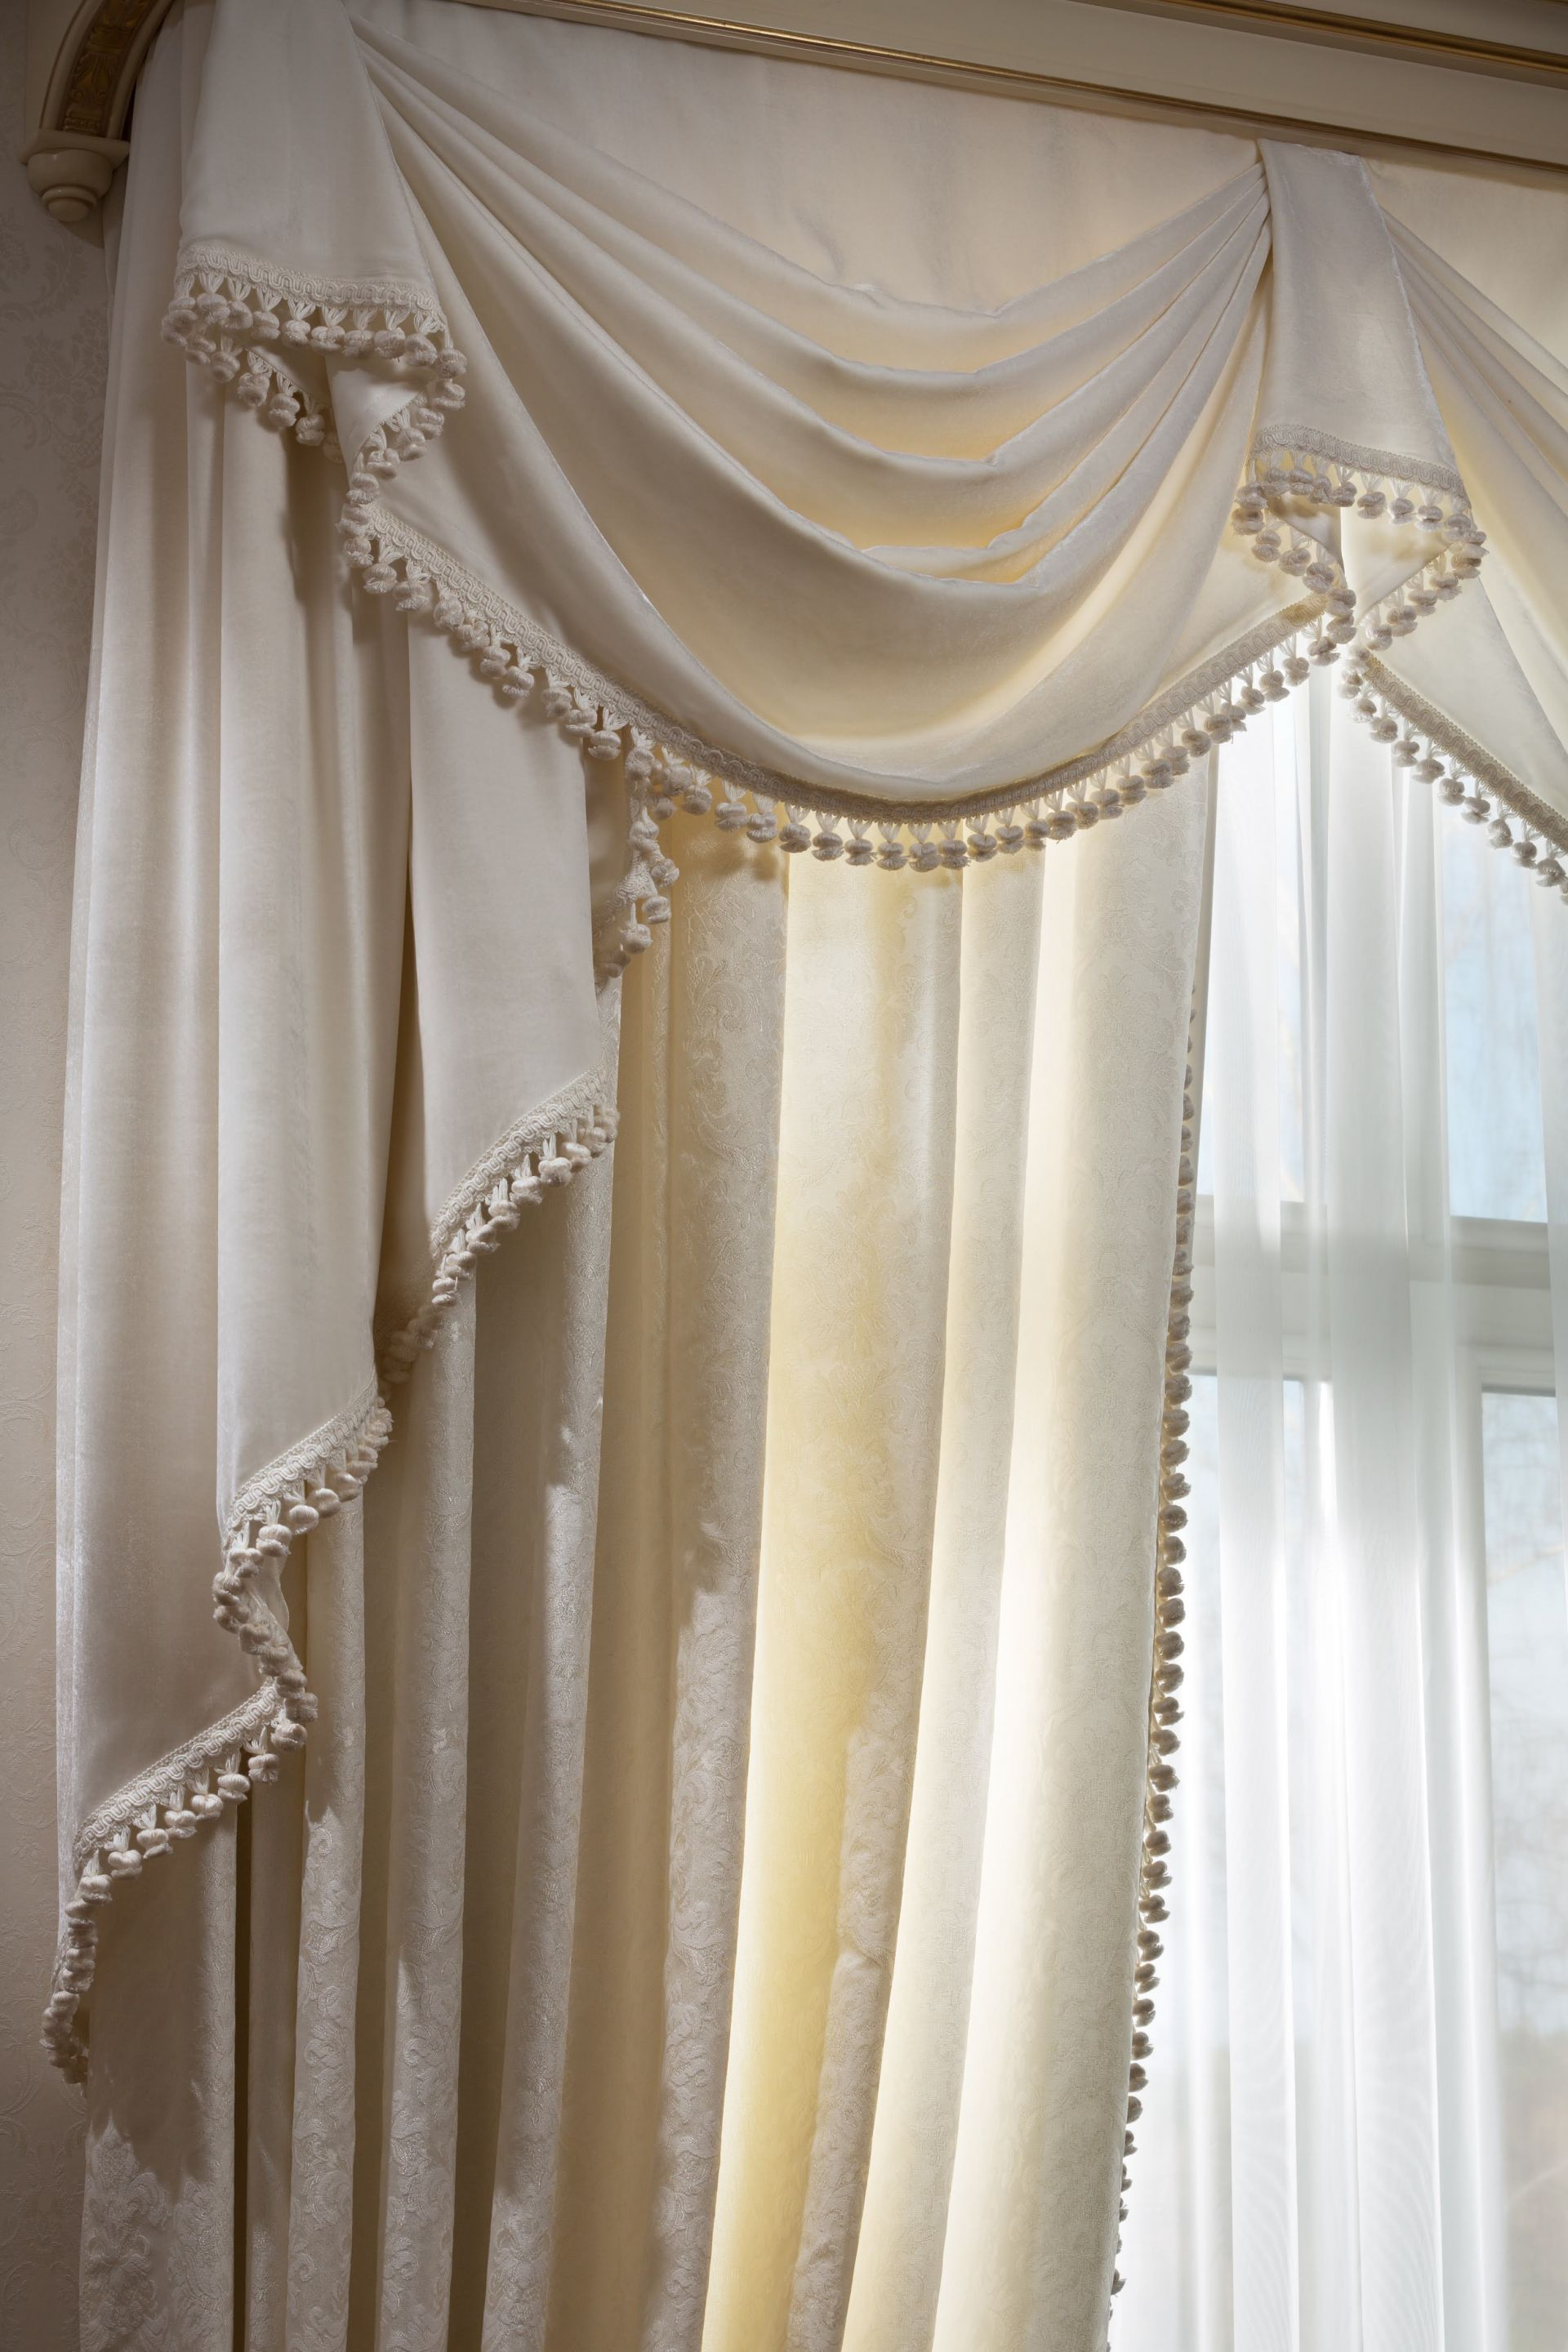 Curtains in an interior